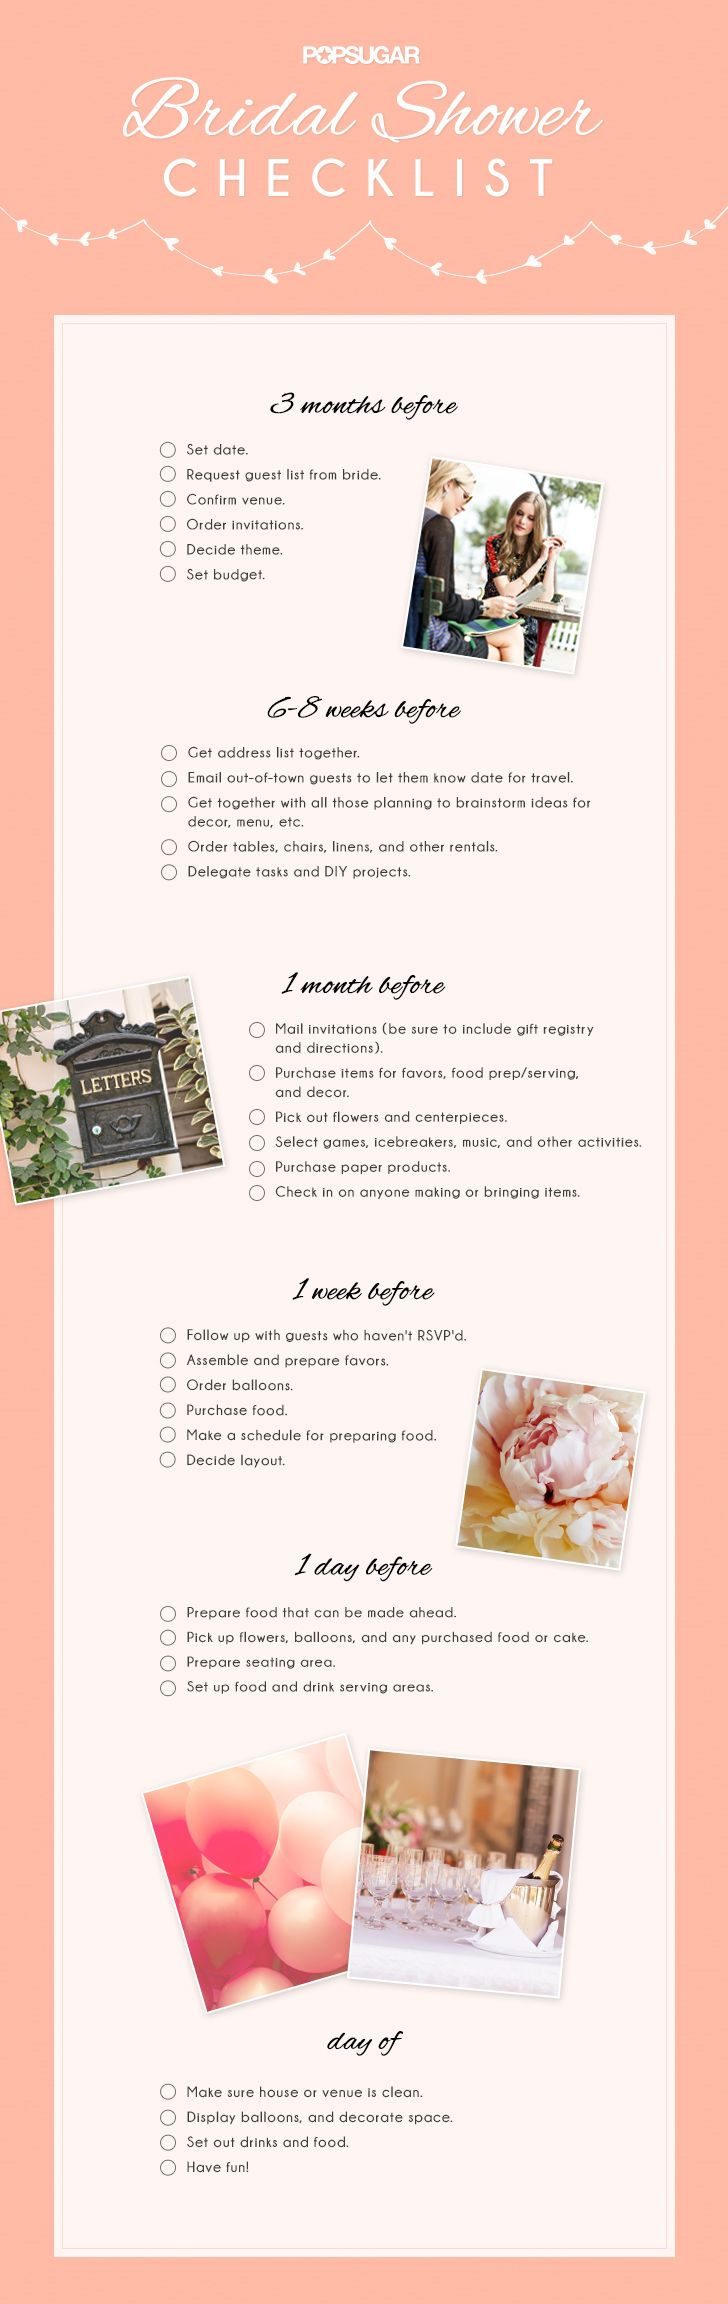 How to plan a wedding shower on a small budget